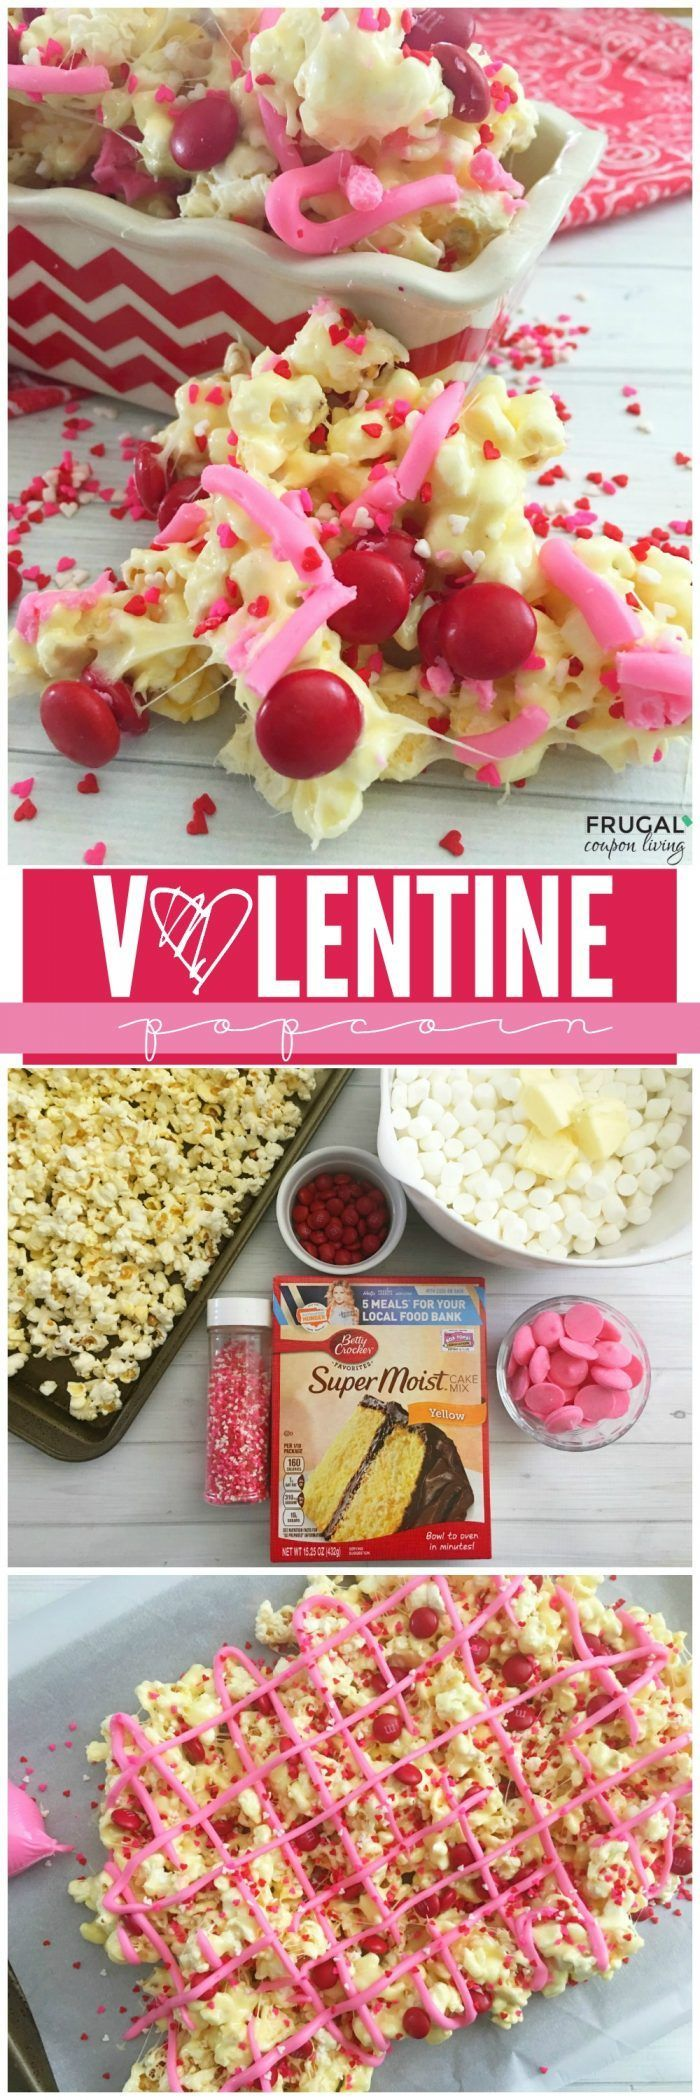 Valentine Popcorn Treats Recipe on Frugal Coupon Living. Valentine class party idea or Valentine Dessert idea.